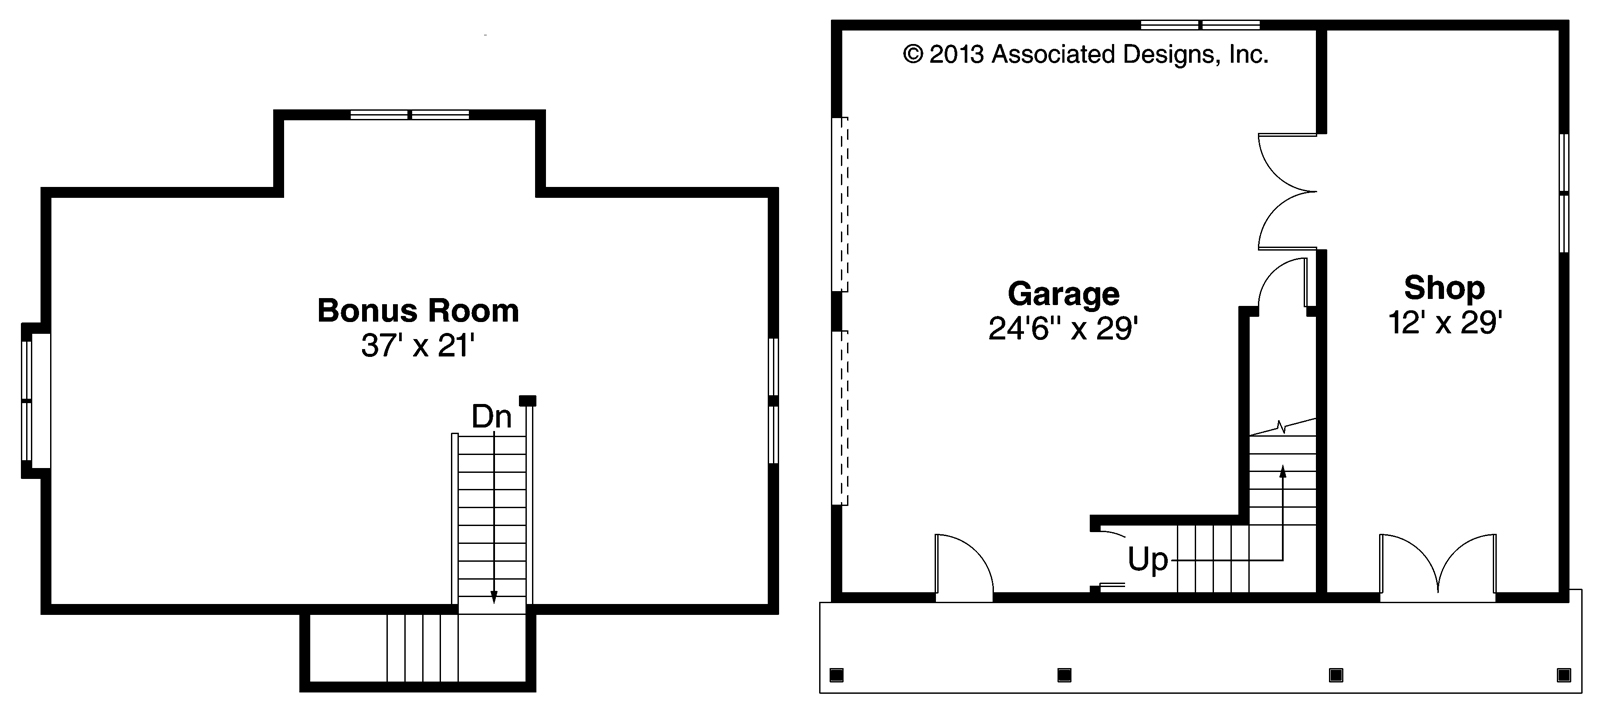 Garage plans with bonus room famin for Deck over garage plans